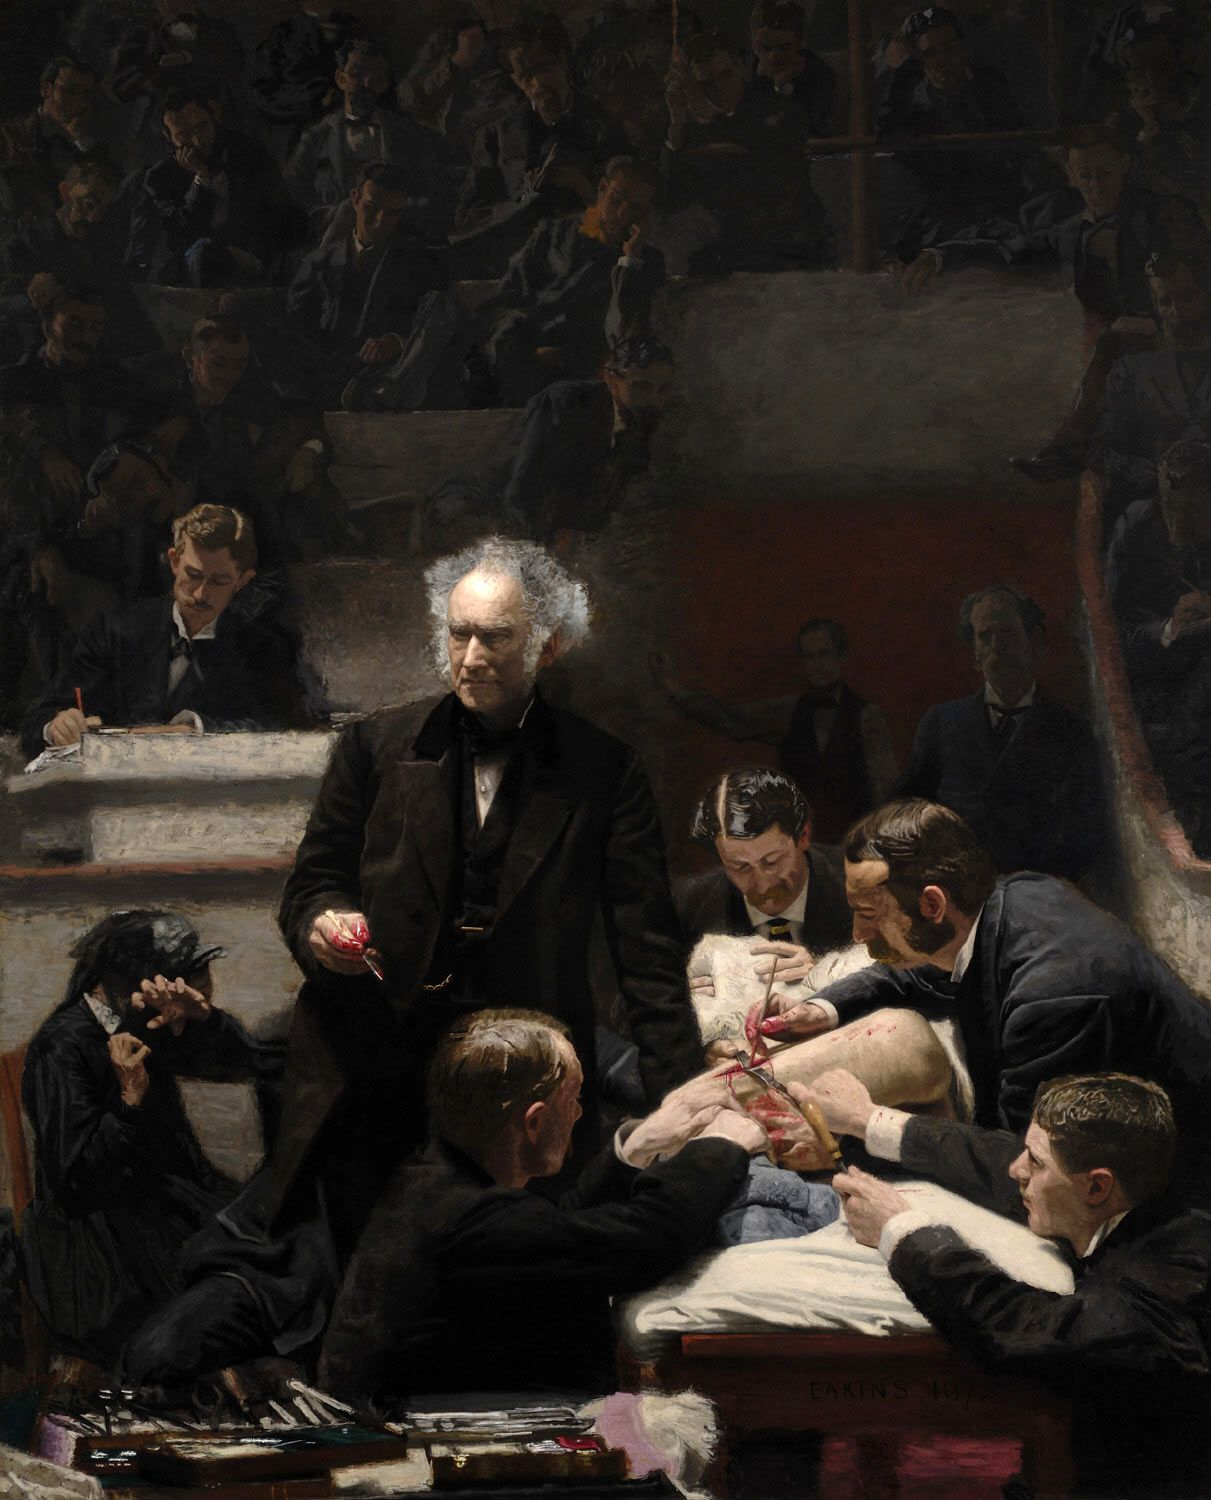 Thomas Eakins - The Gross Clinic: #29 Most Expensive Painting. | Art ...